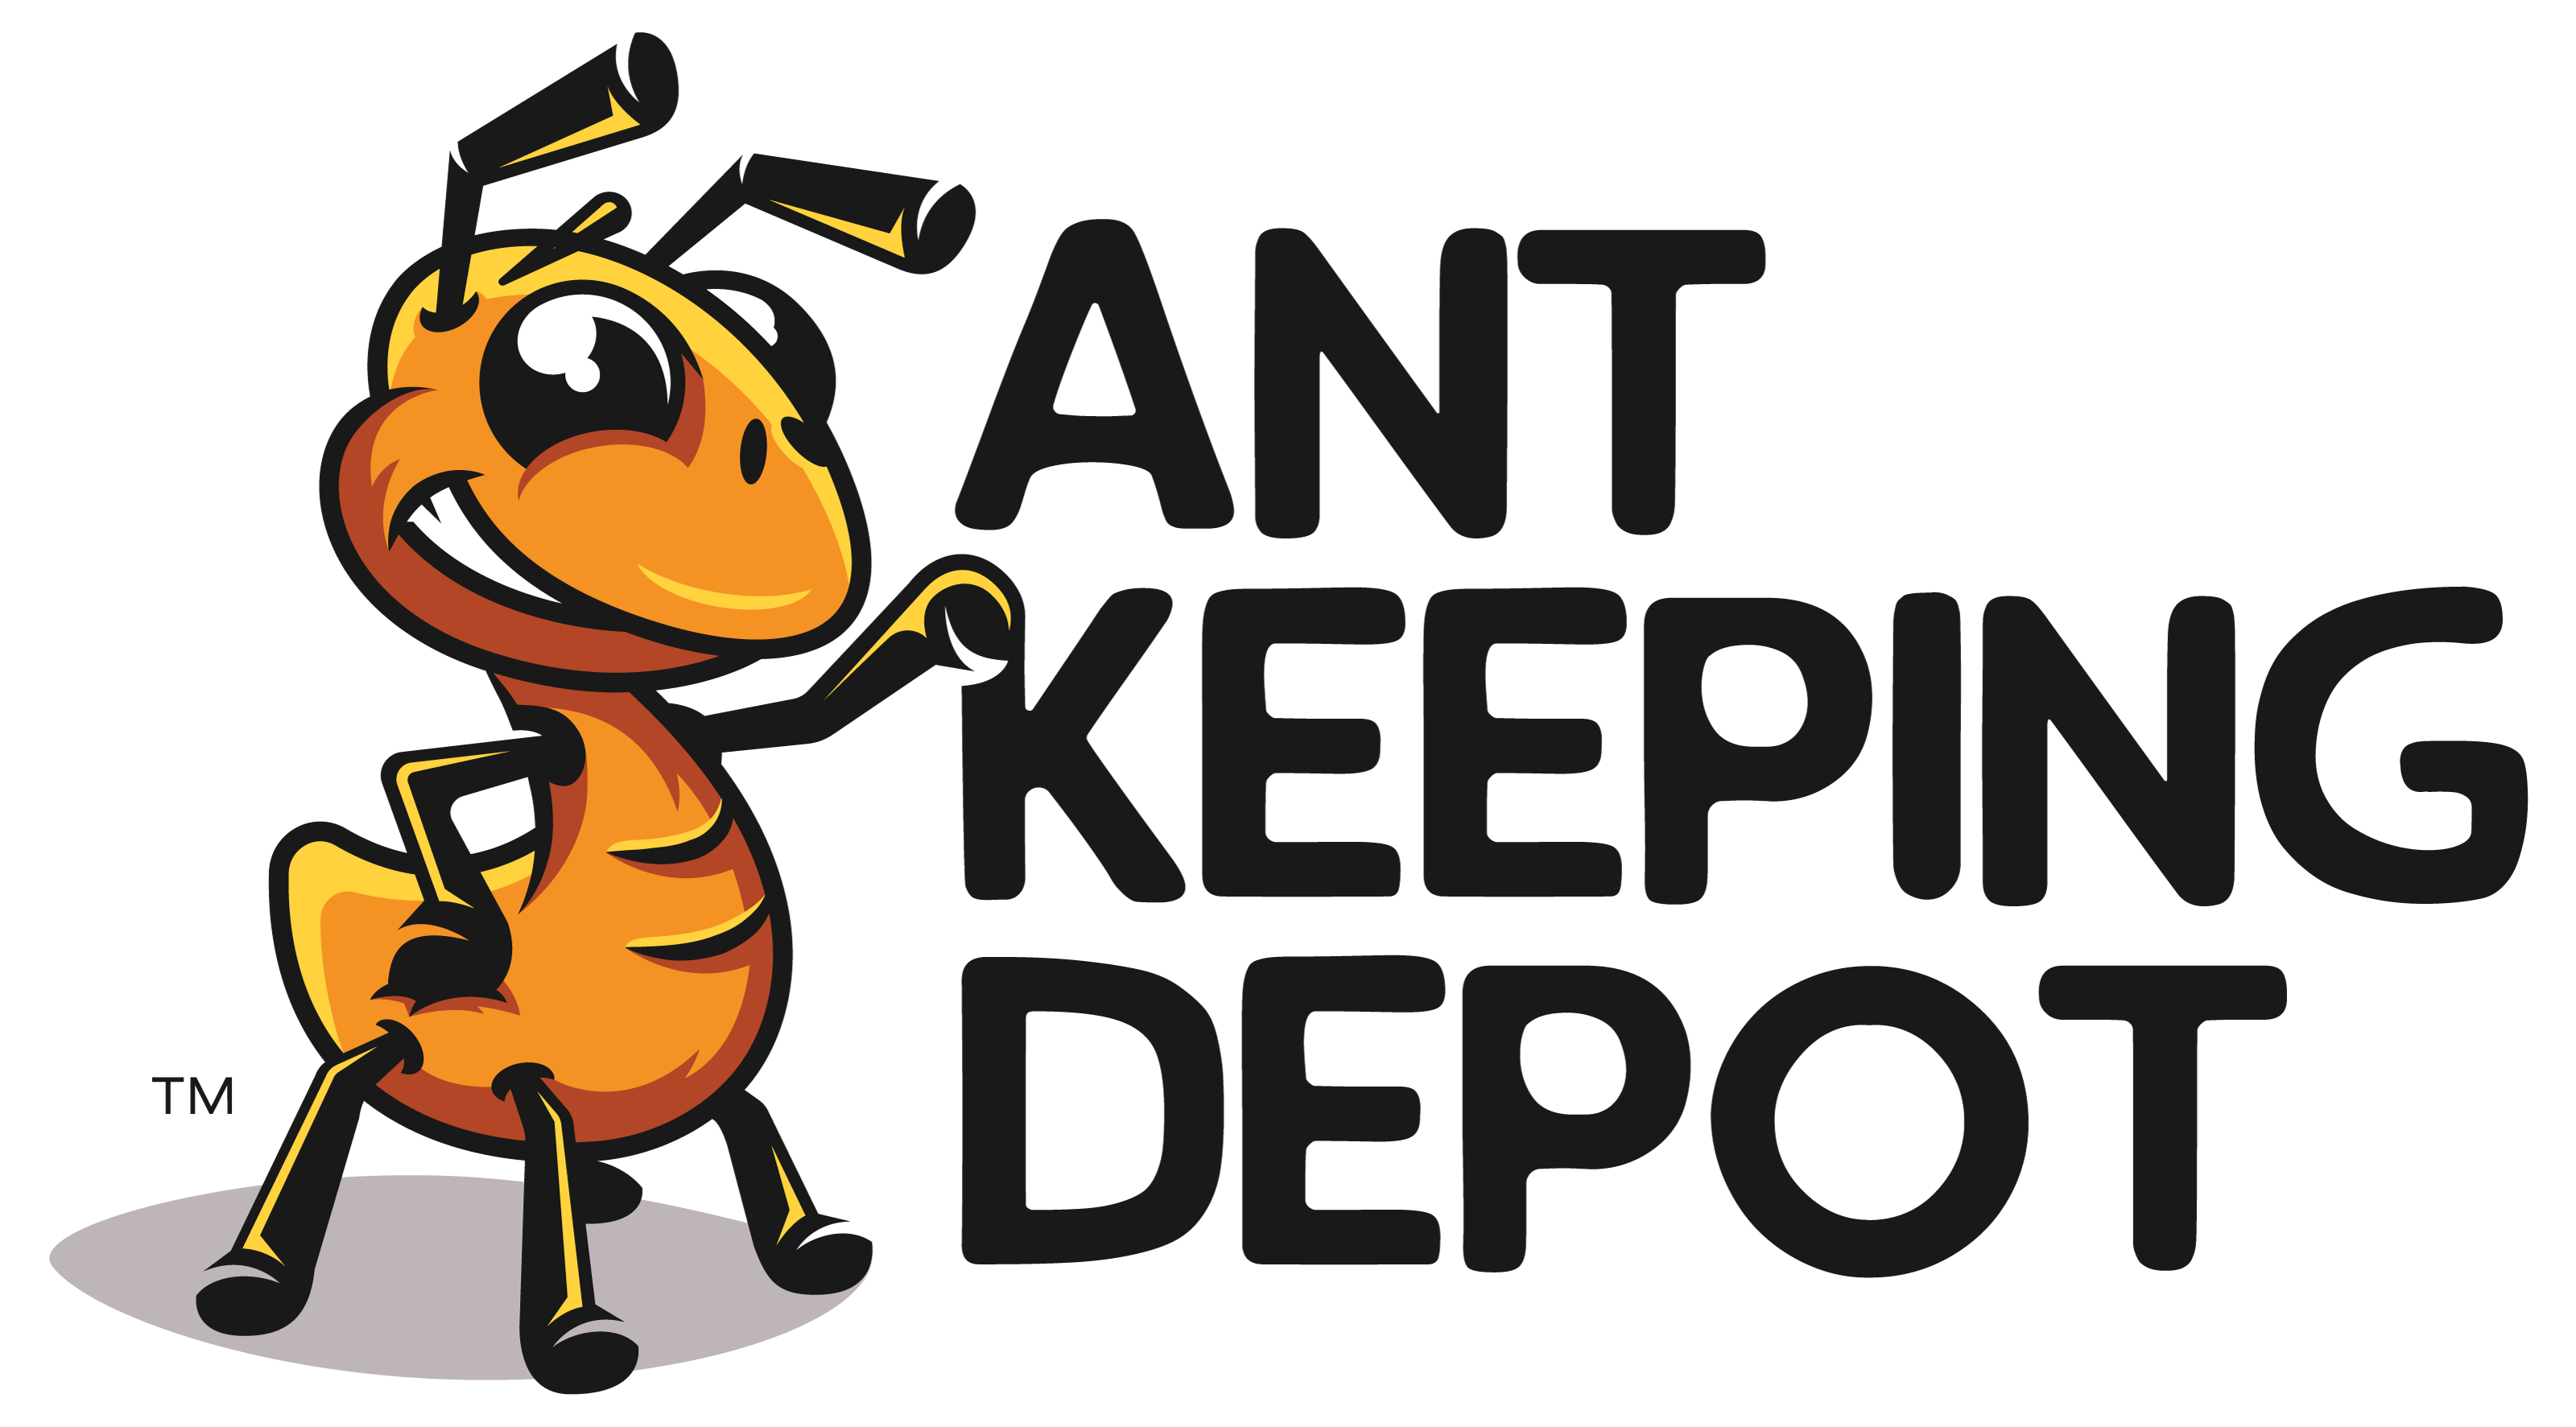 Ant Keeping Depot